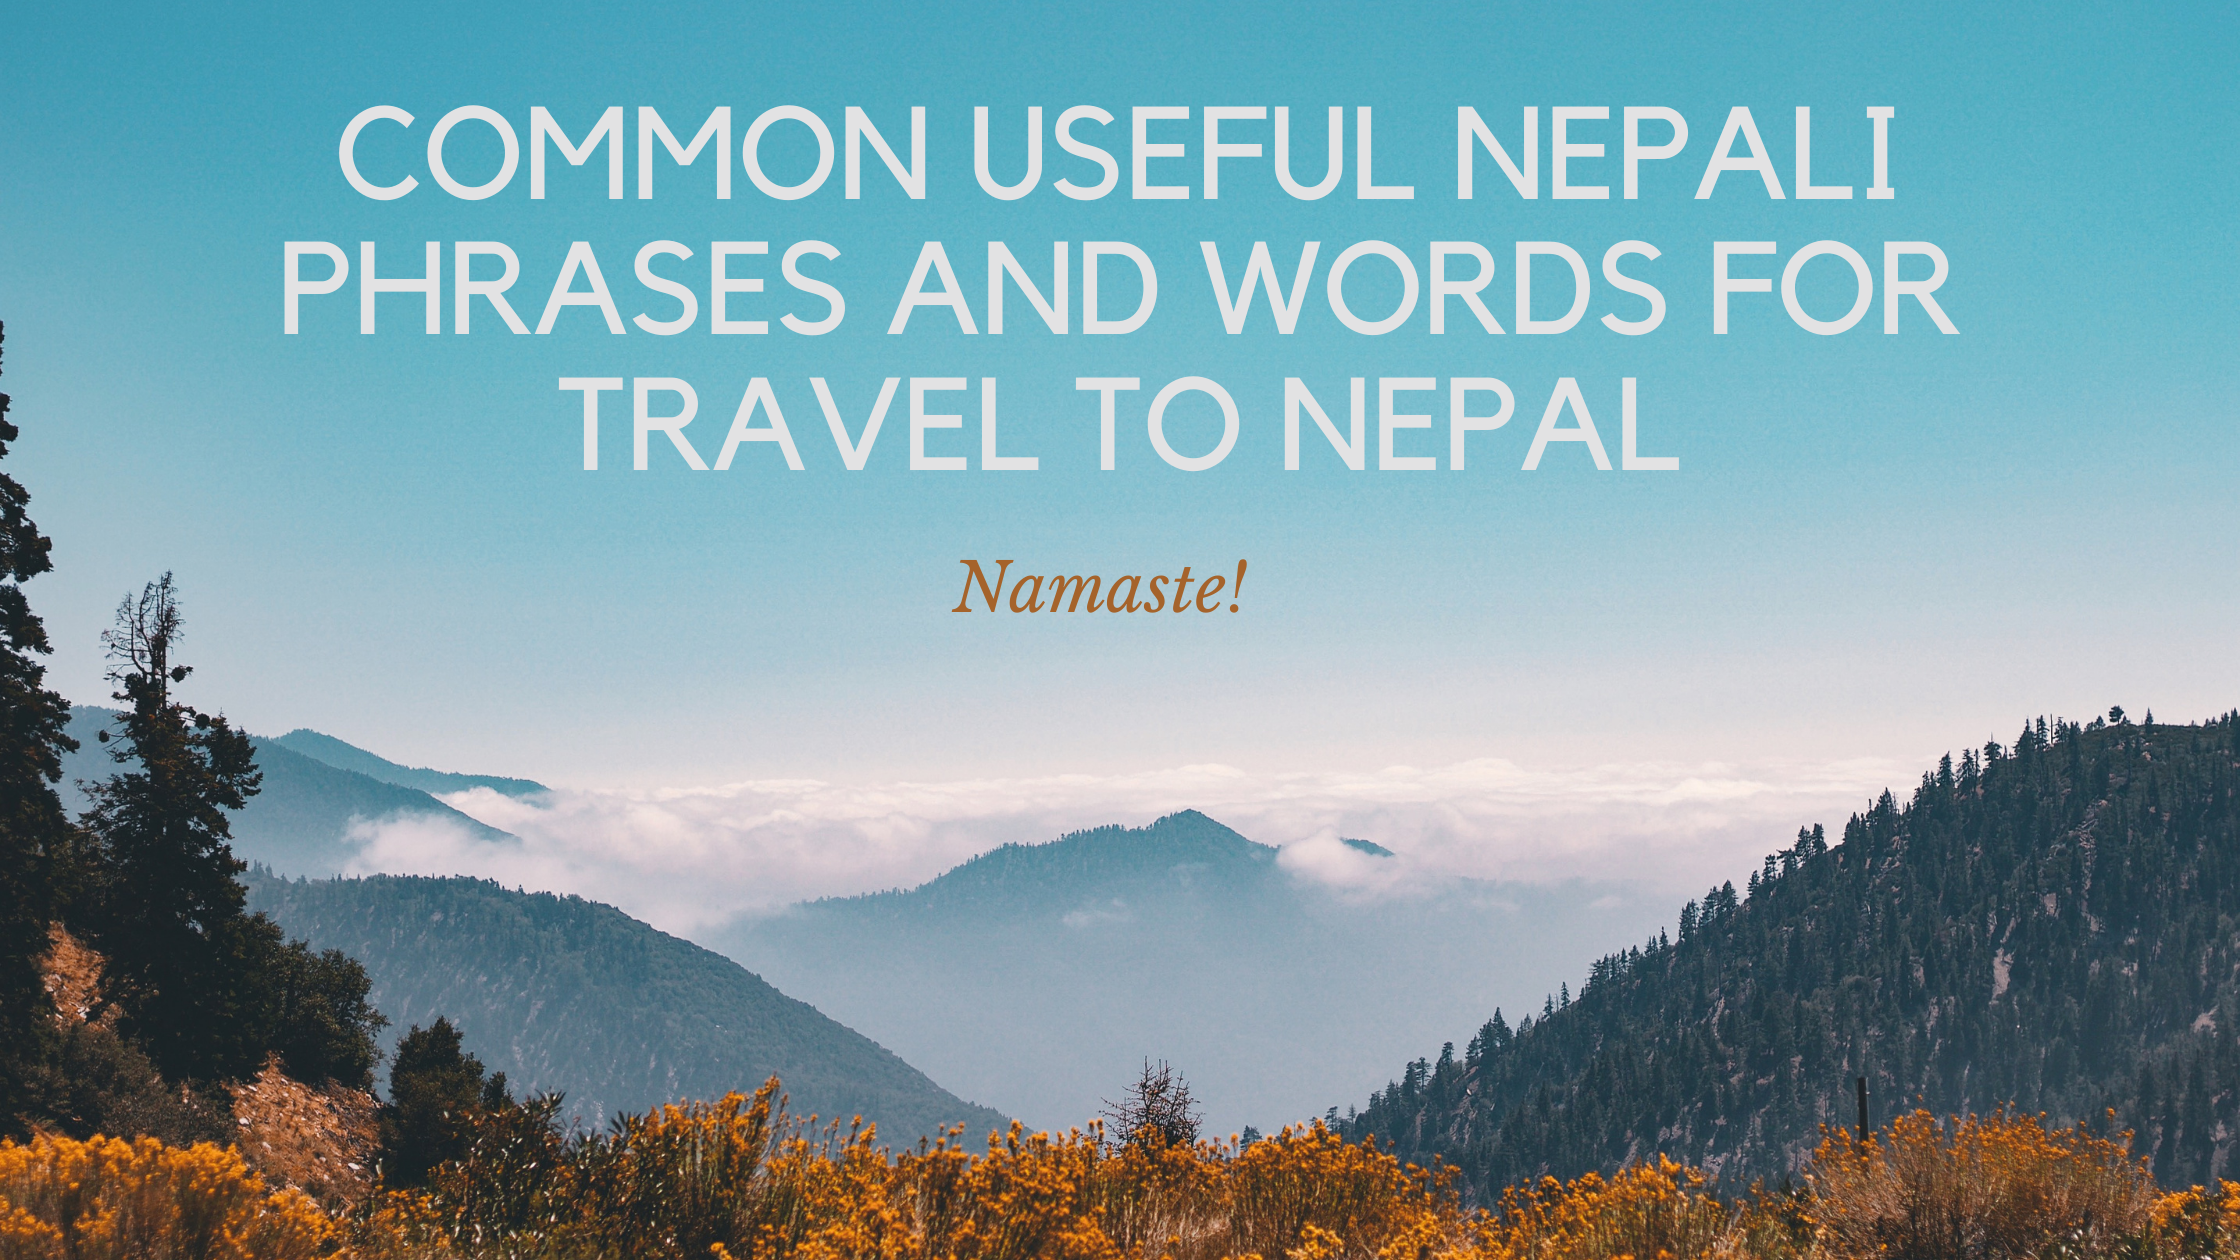 Common Useful Nepali Phrases And Words for Travel to Nepal